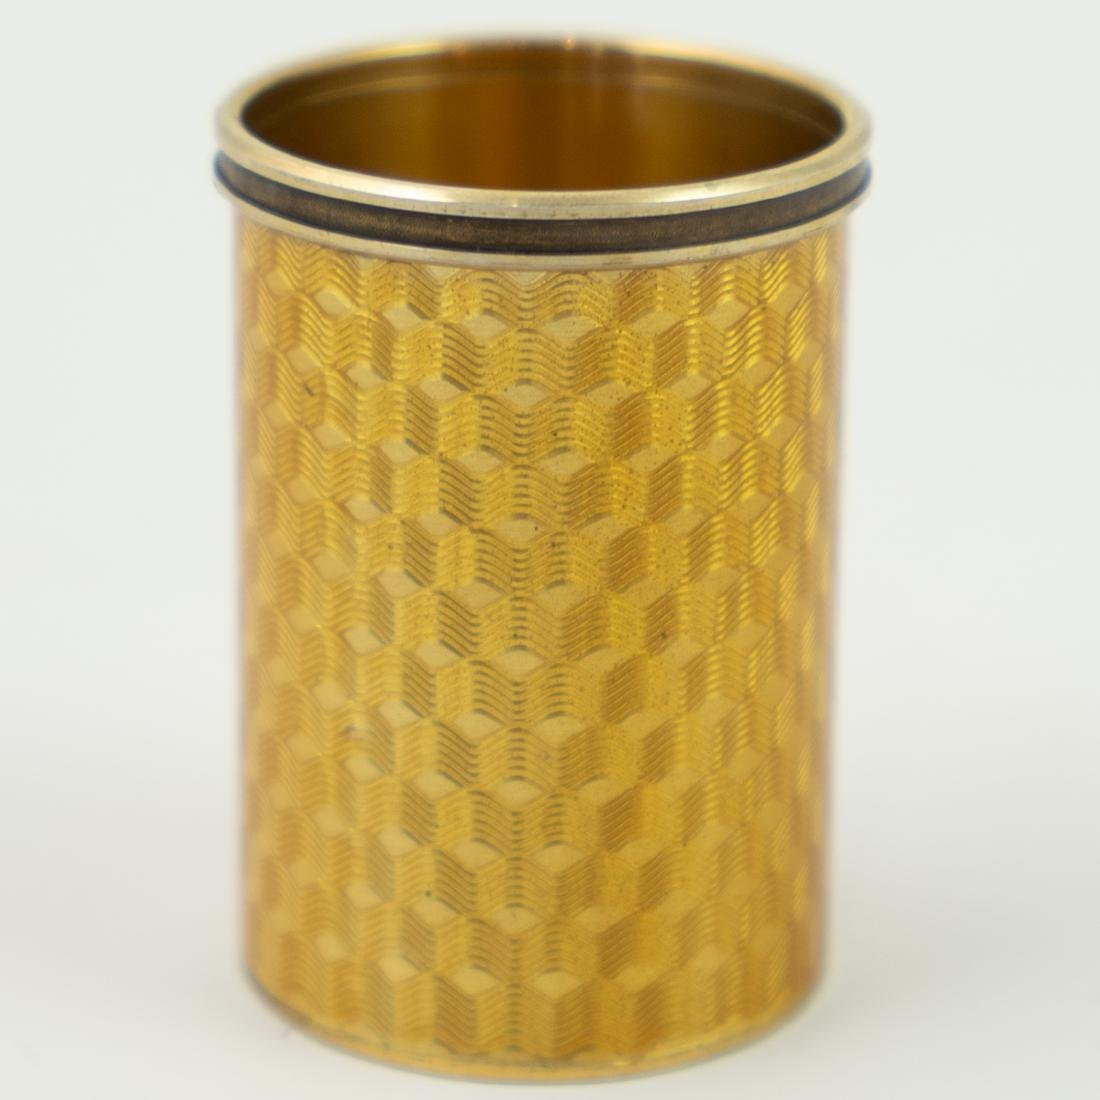 Karl Faberge Guiloche Enameled Silver Shot Glass by